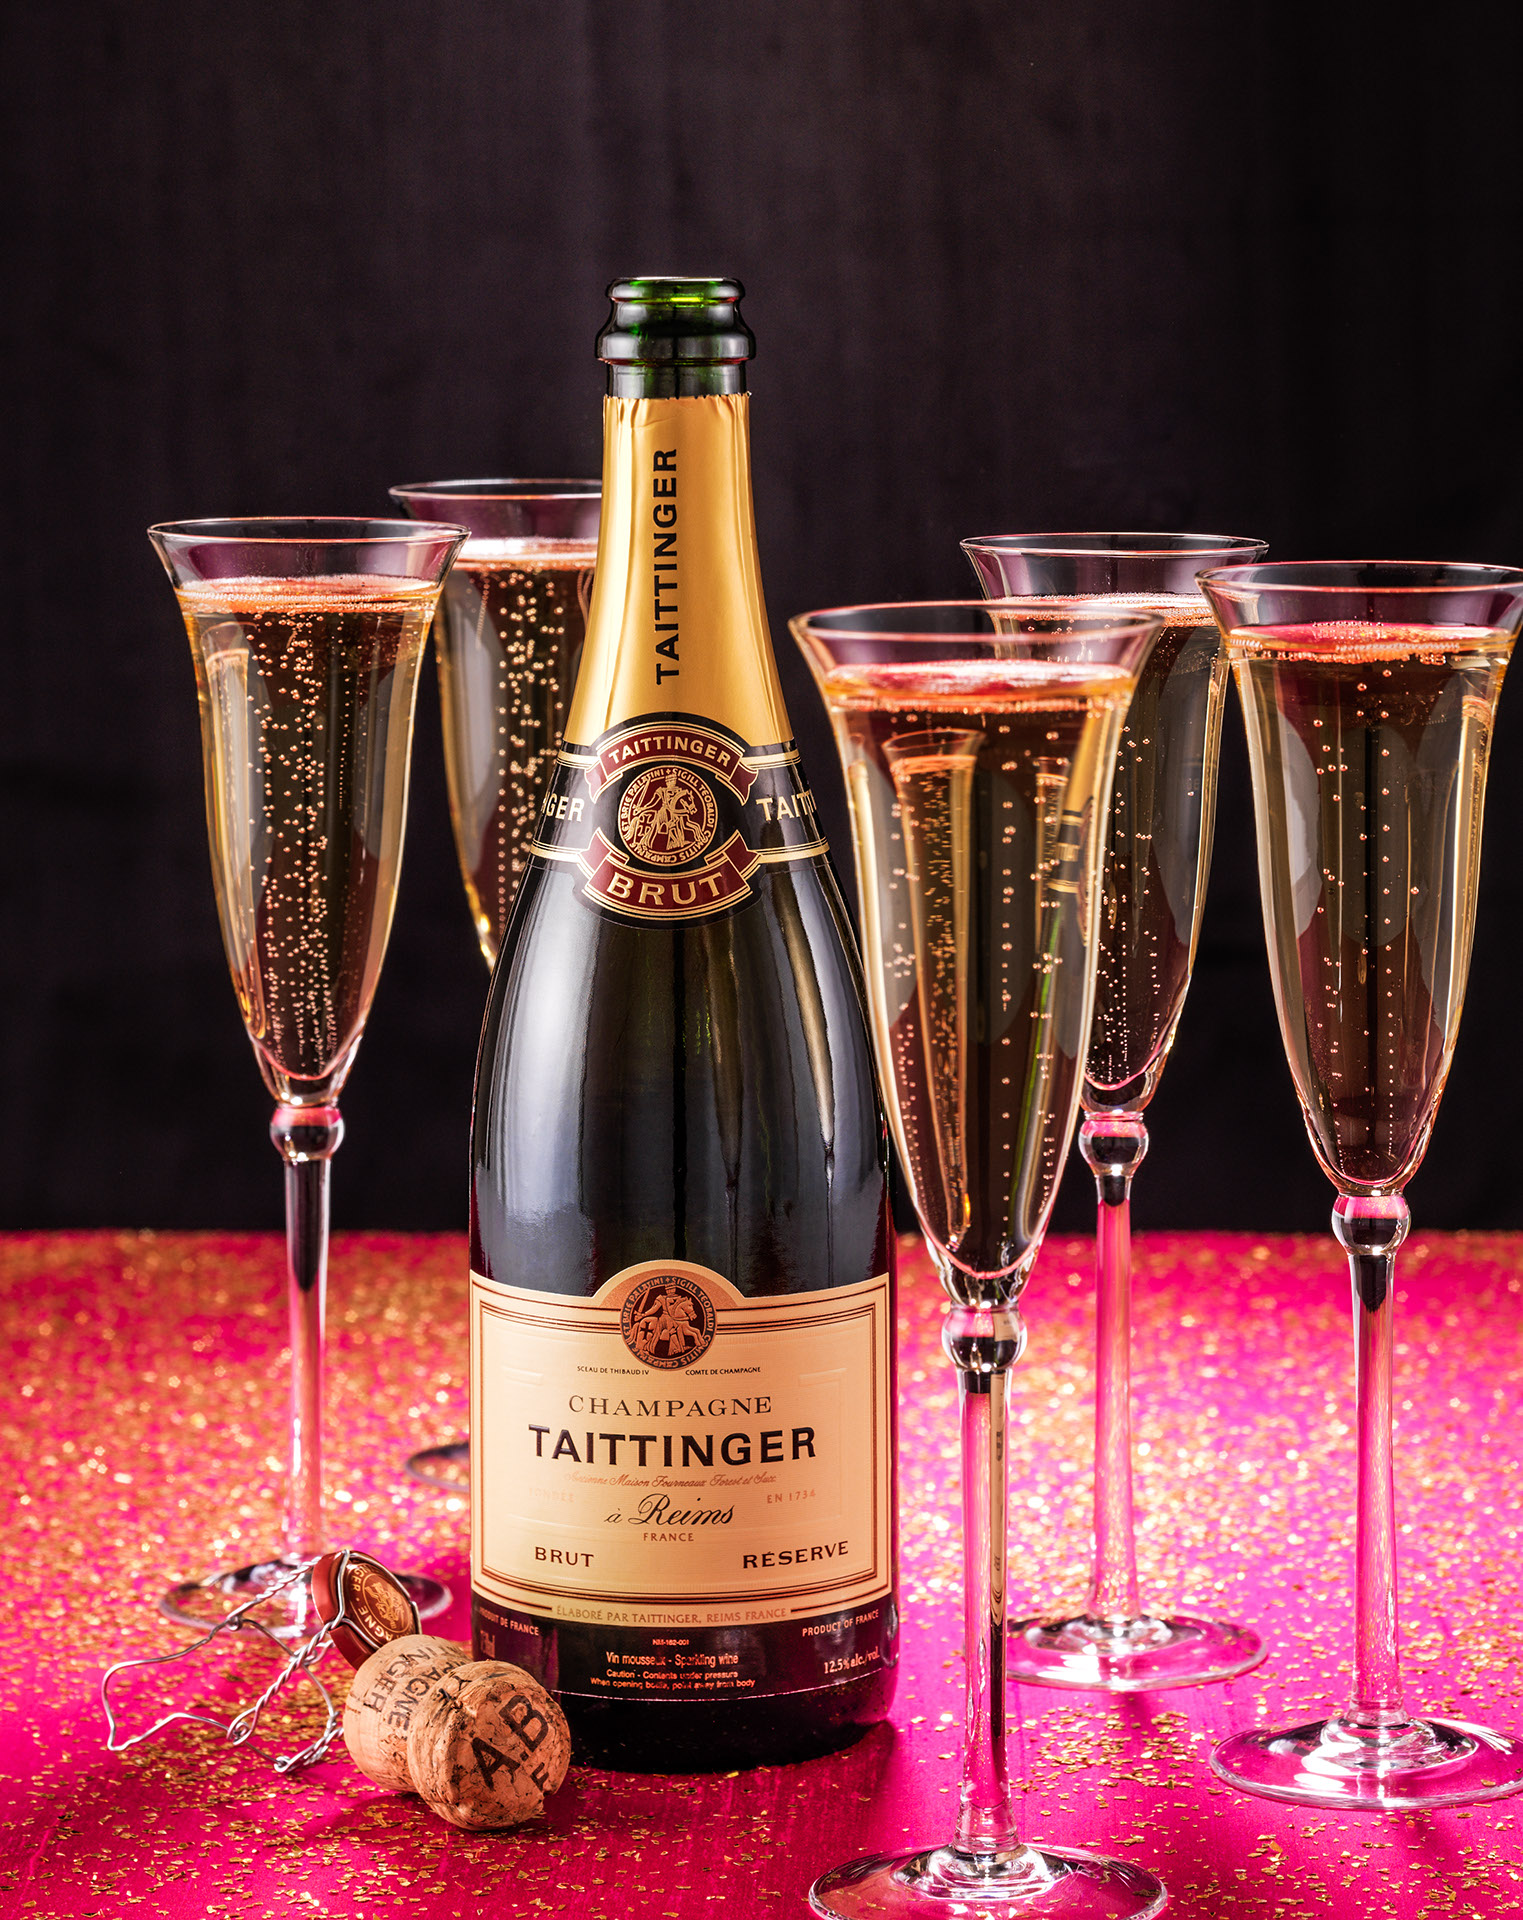 ChampagneTaittinger-Cork_Rev